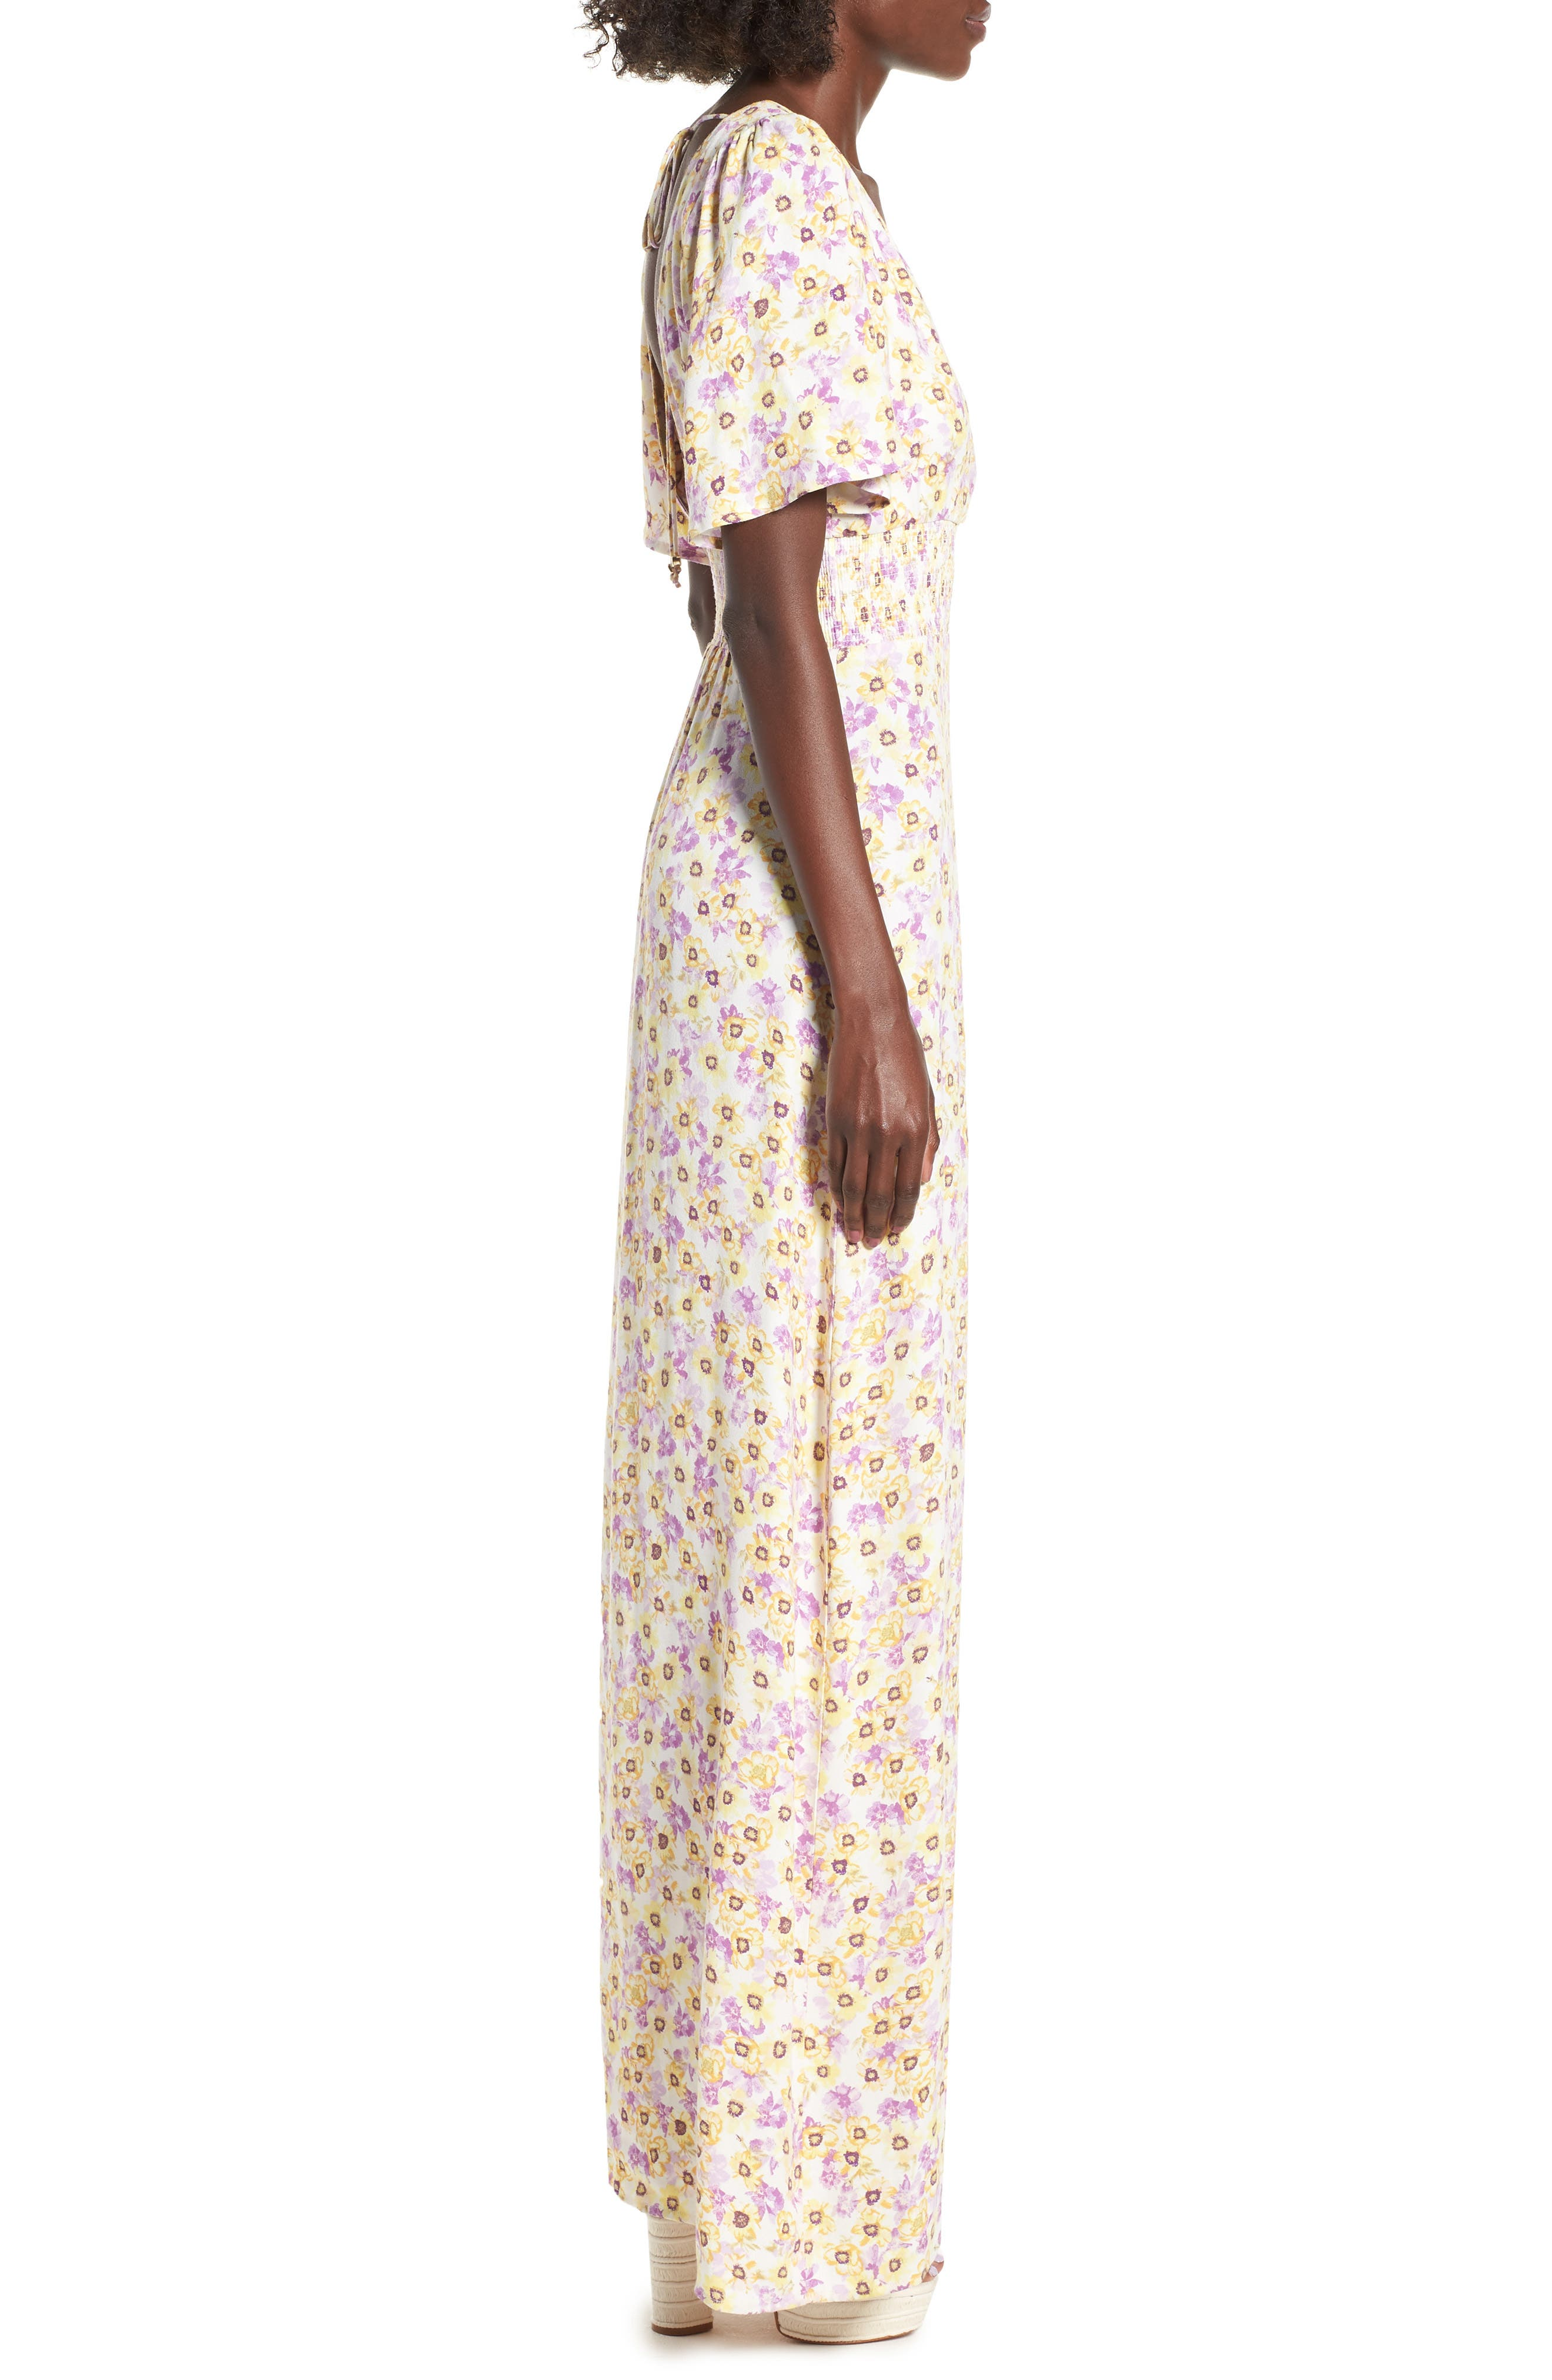 Tuscany Maxi Dress,                             Alternate thumbnail 3, color,                             YELLOW GARDEN